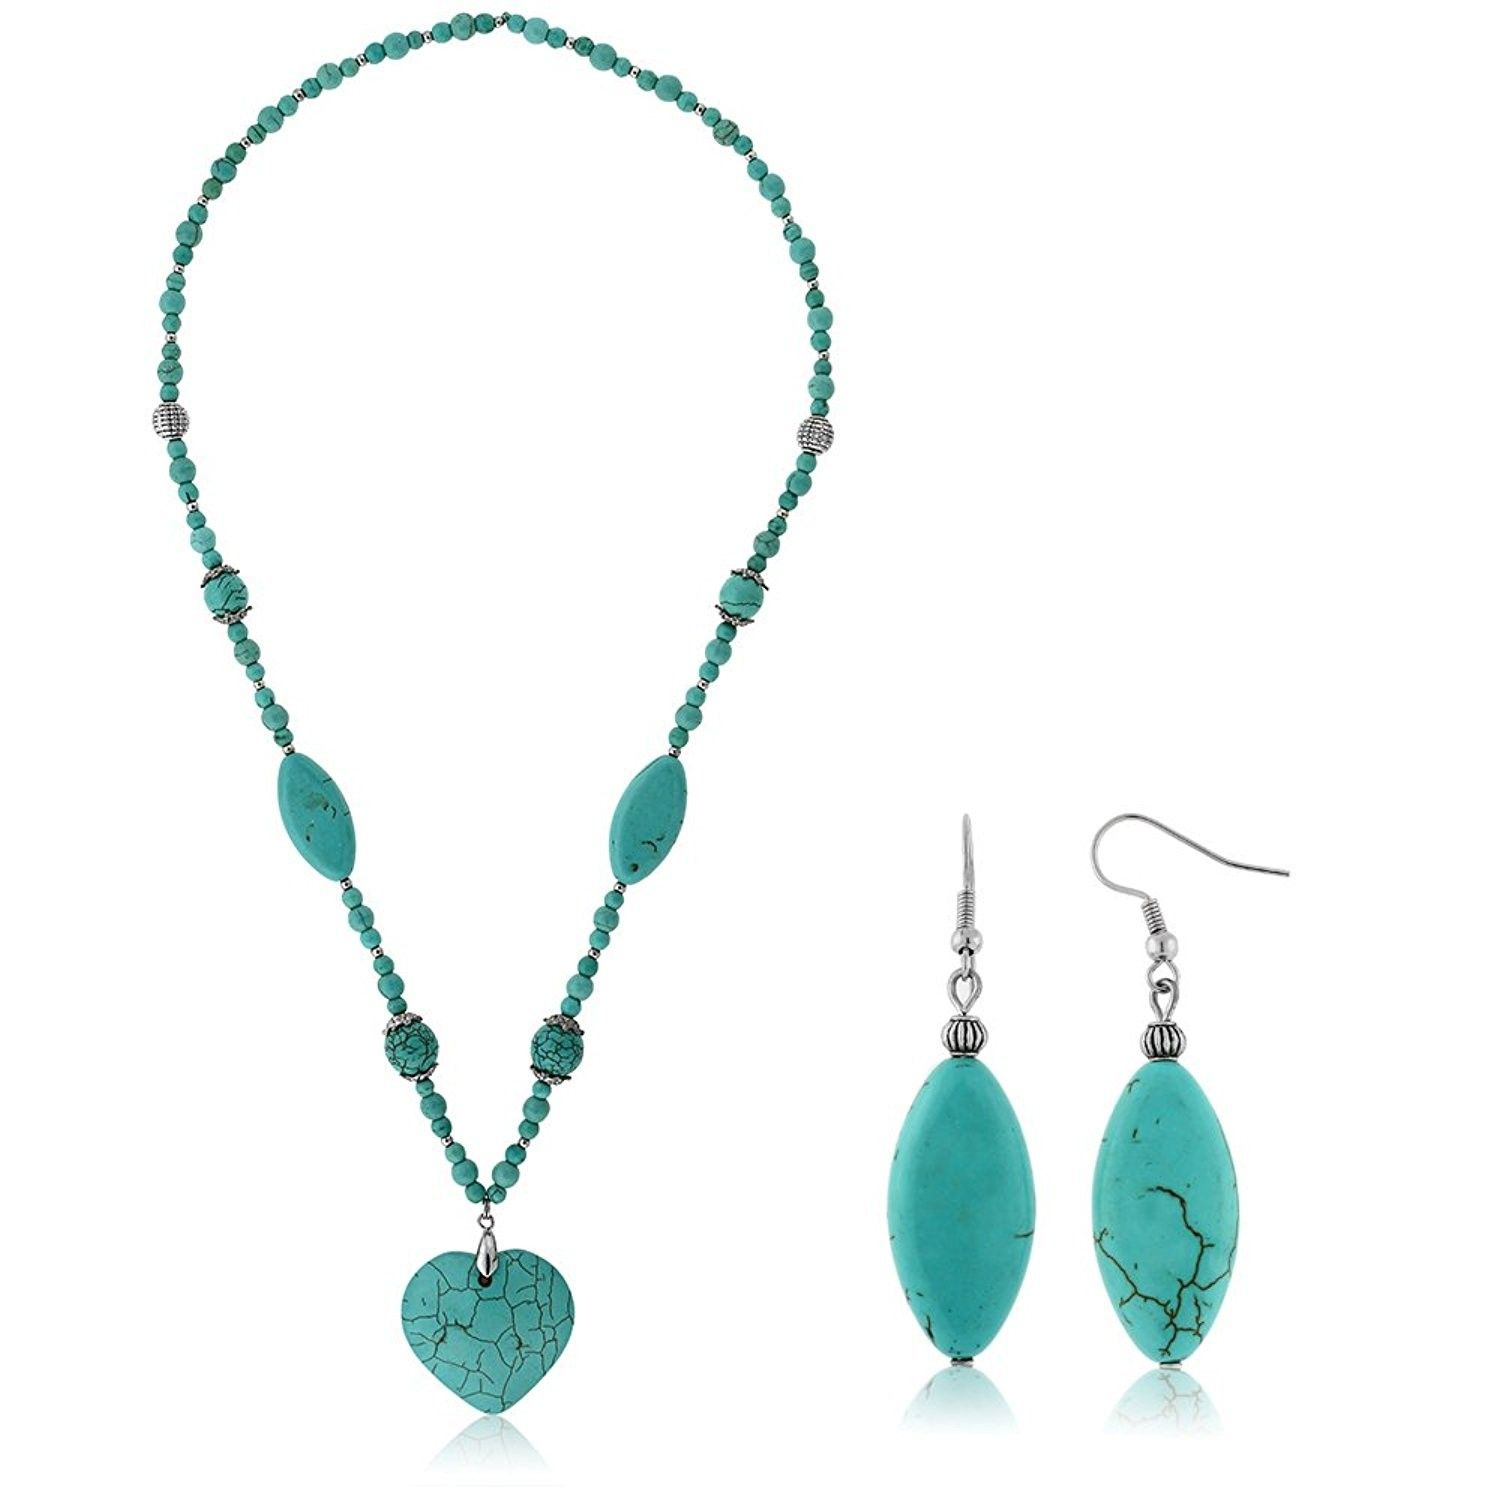 24 Simulated Turquoise Howlite Necklace With Heart Shape